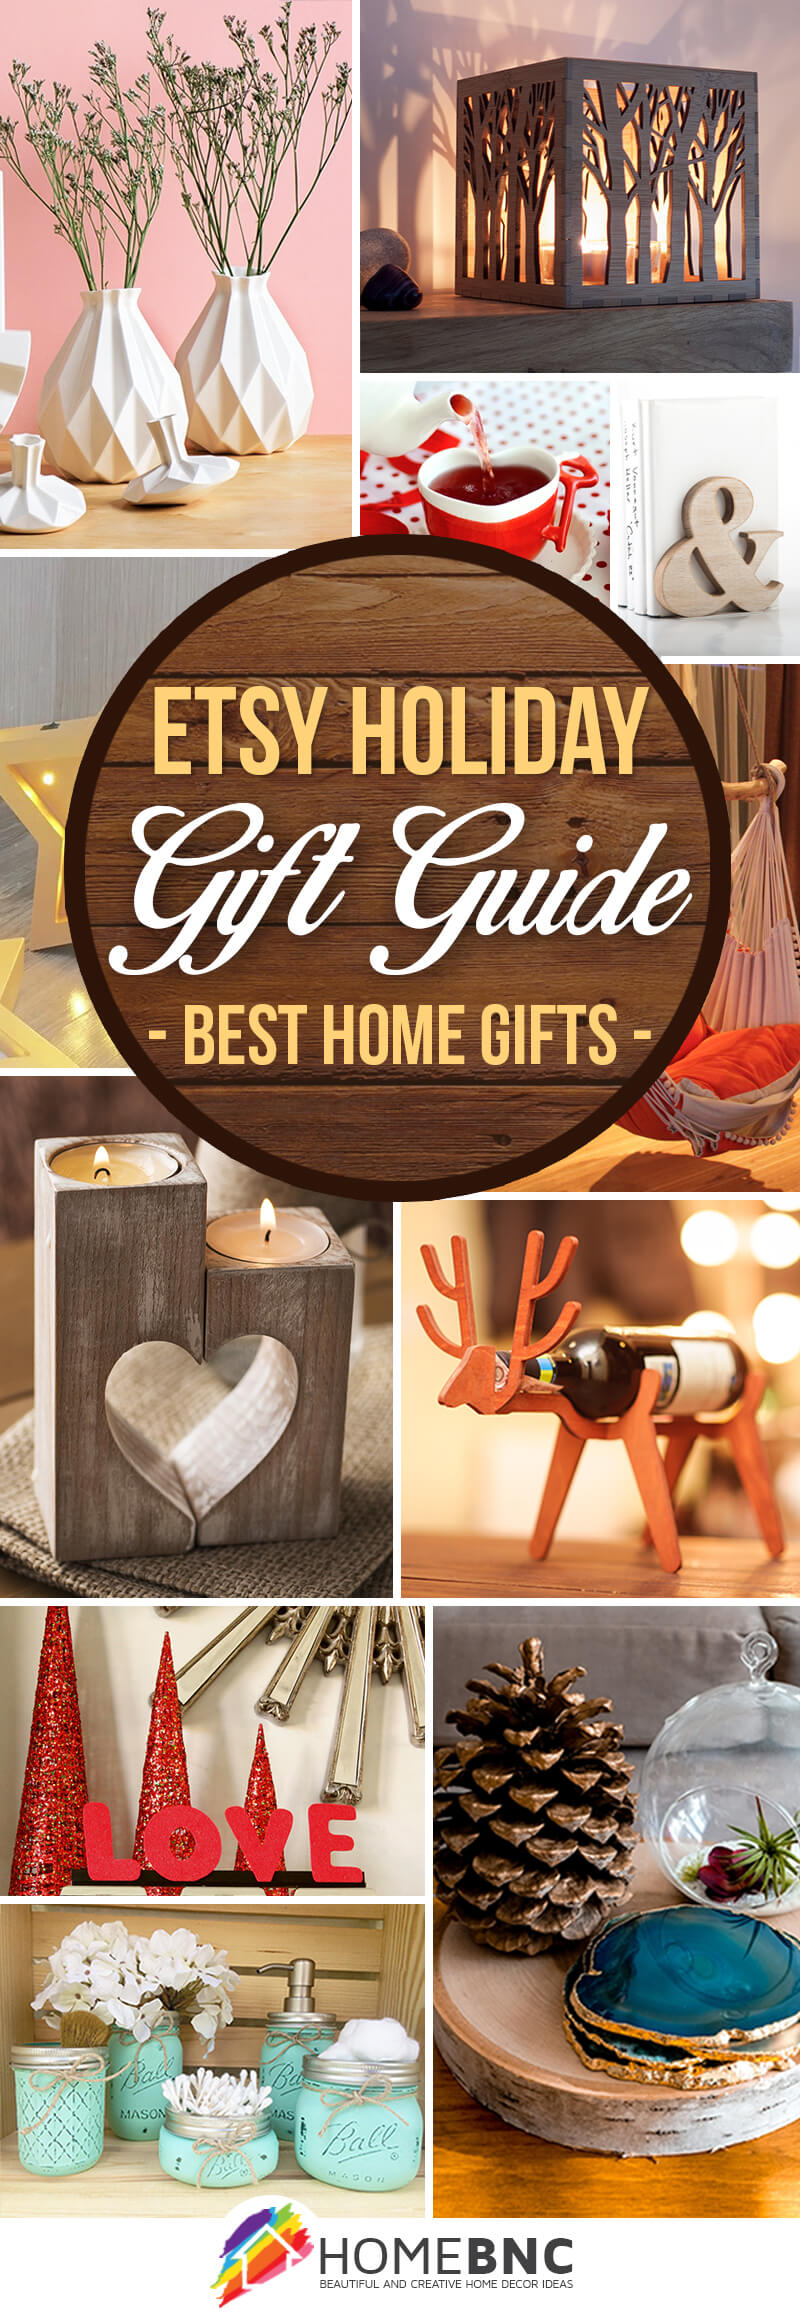 Christmas gifts ideas for the home